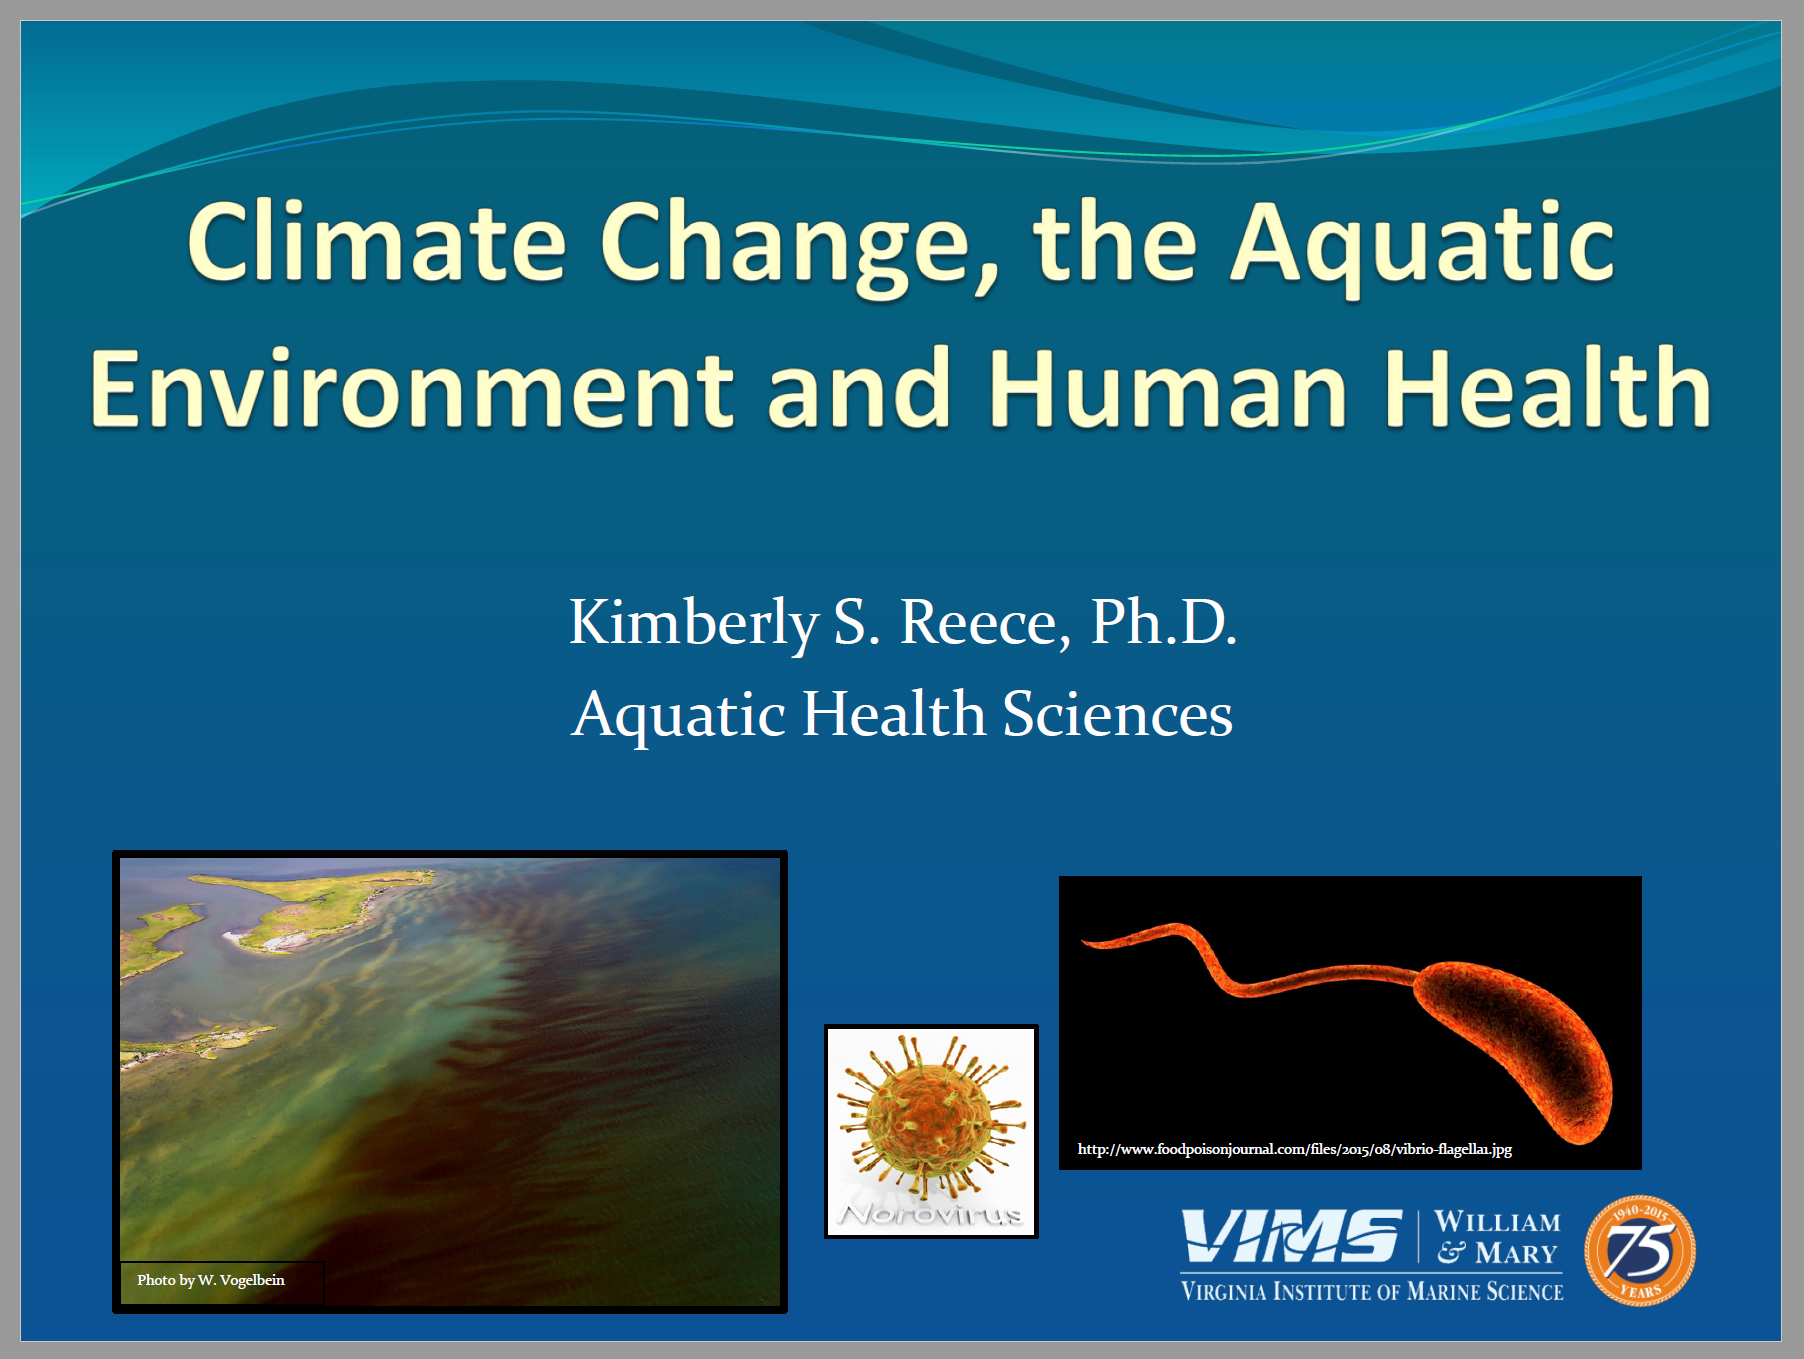 Climate Change, the Aquatic Environment and Human Health